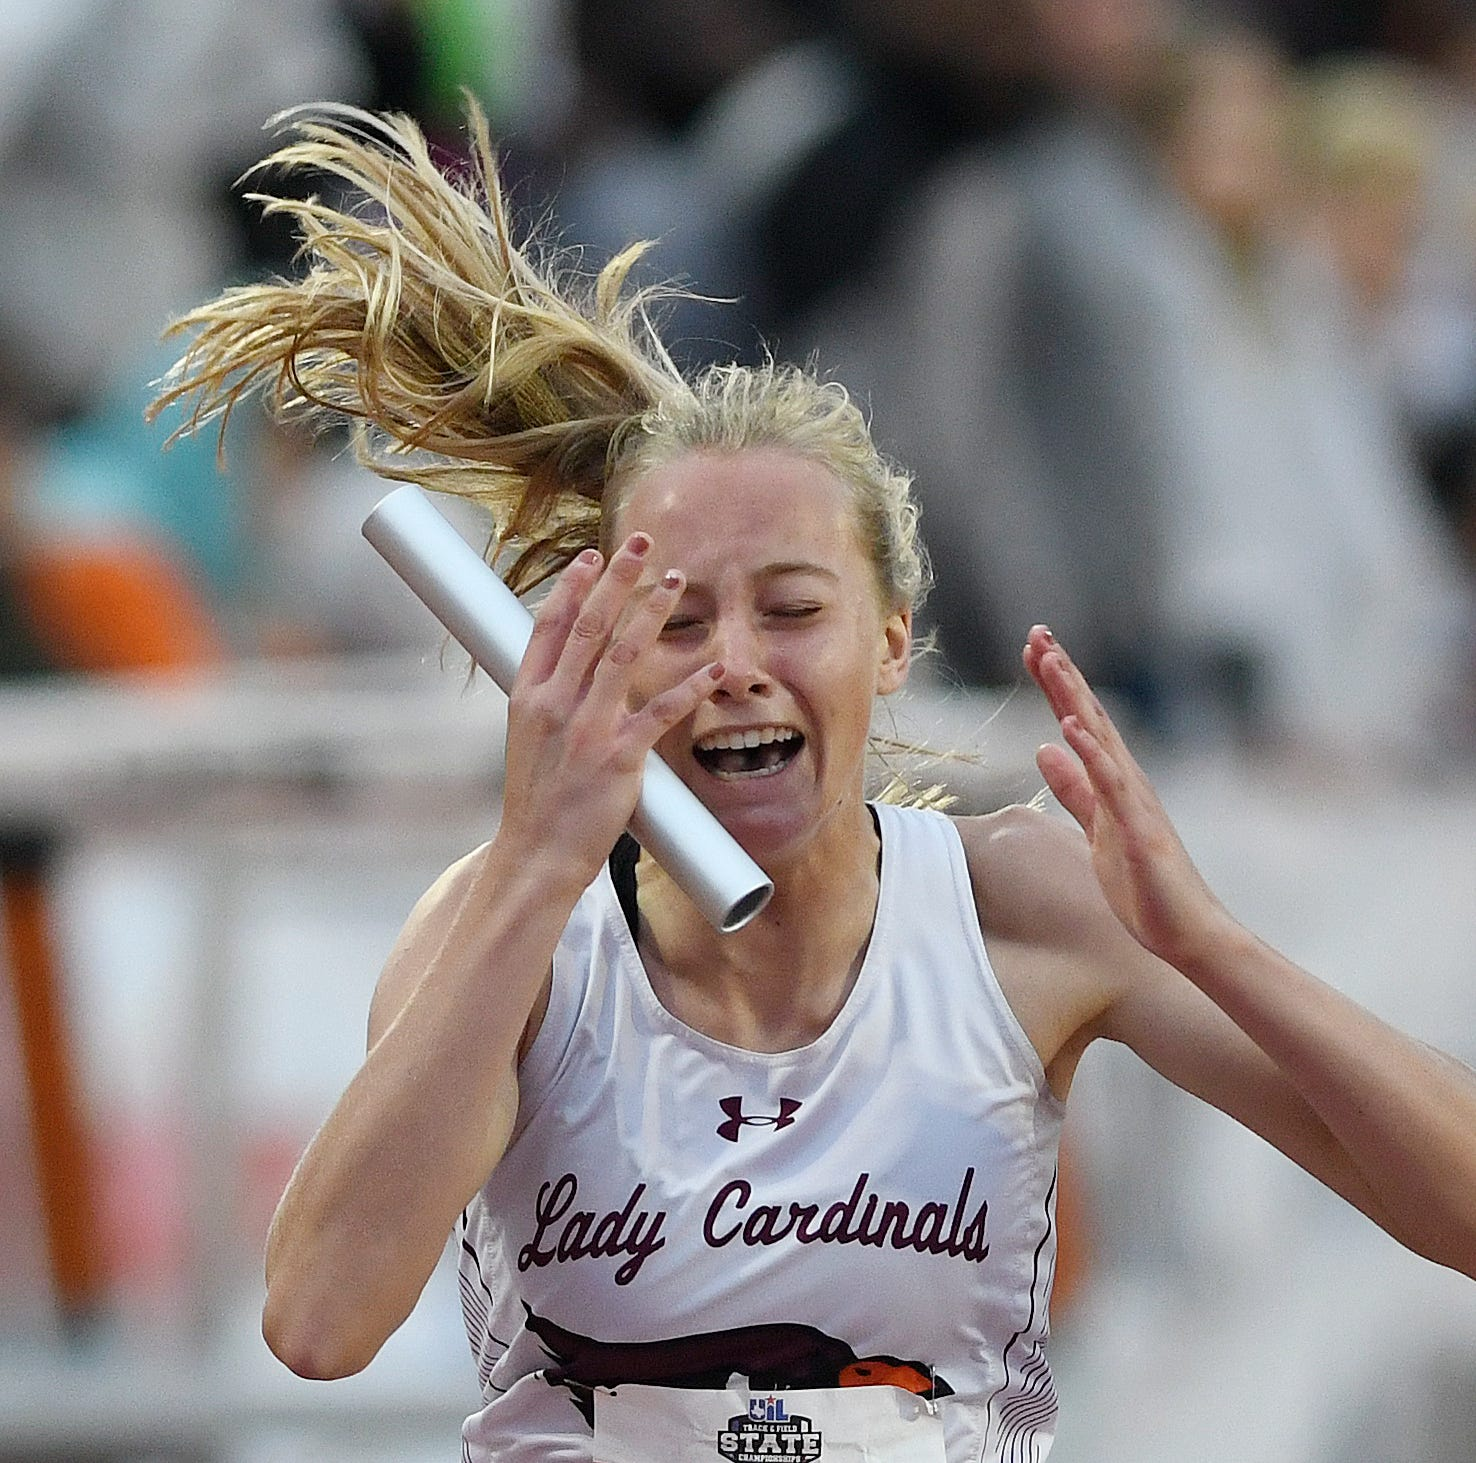 Lingleville 'sisterhood' earns three relay medals at state track meet